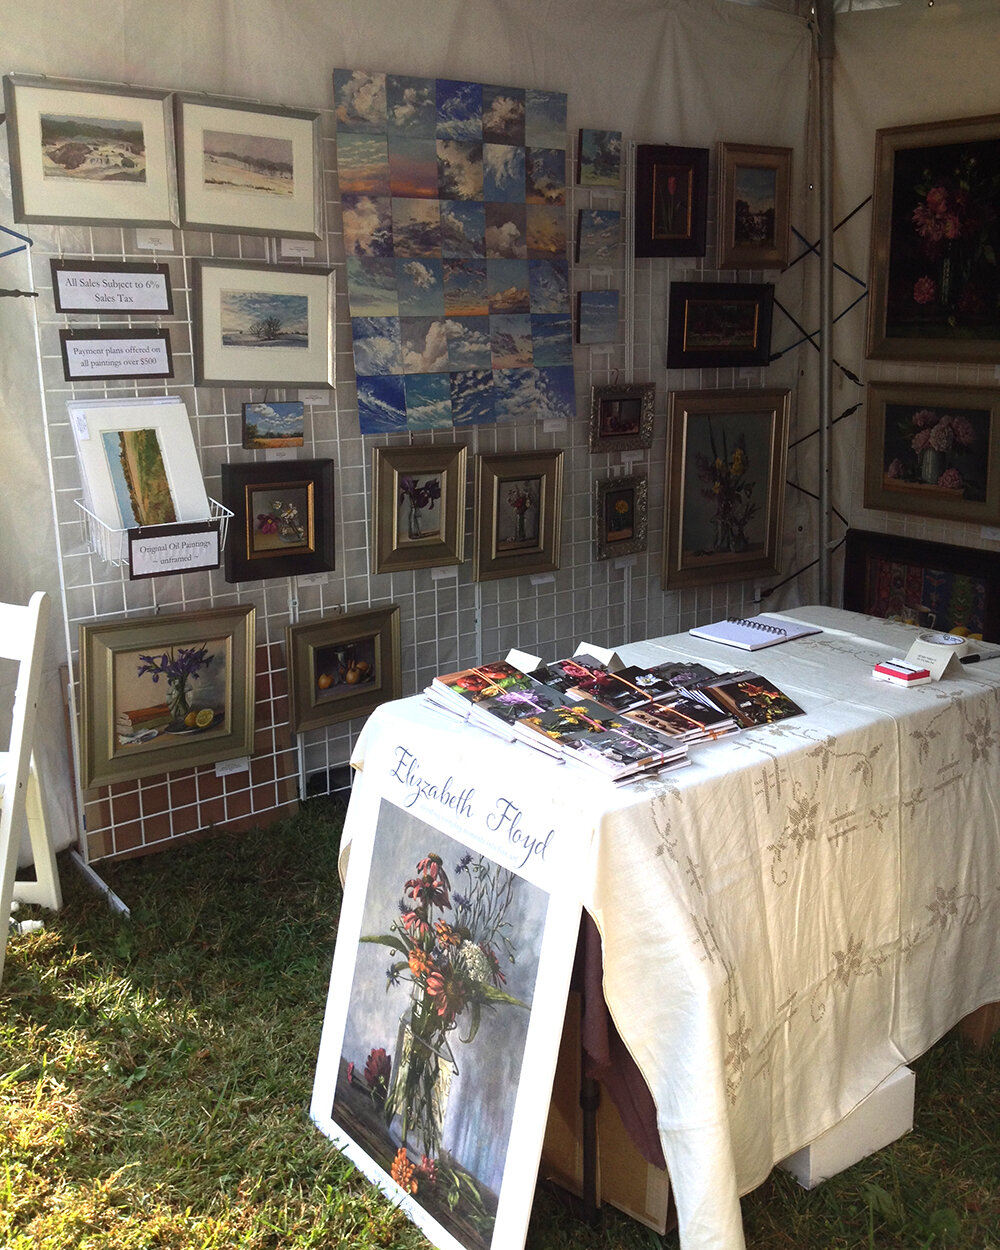 My tent when I last participated in the McLean ArtFest!